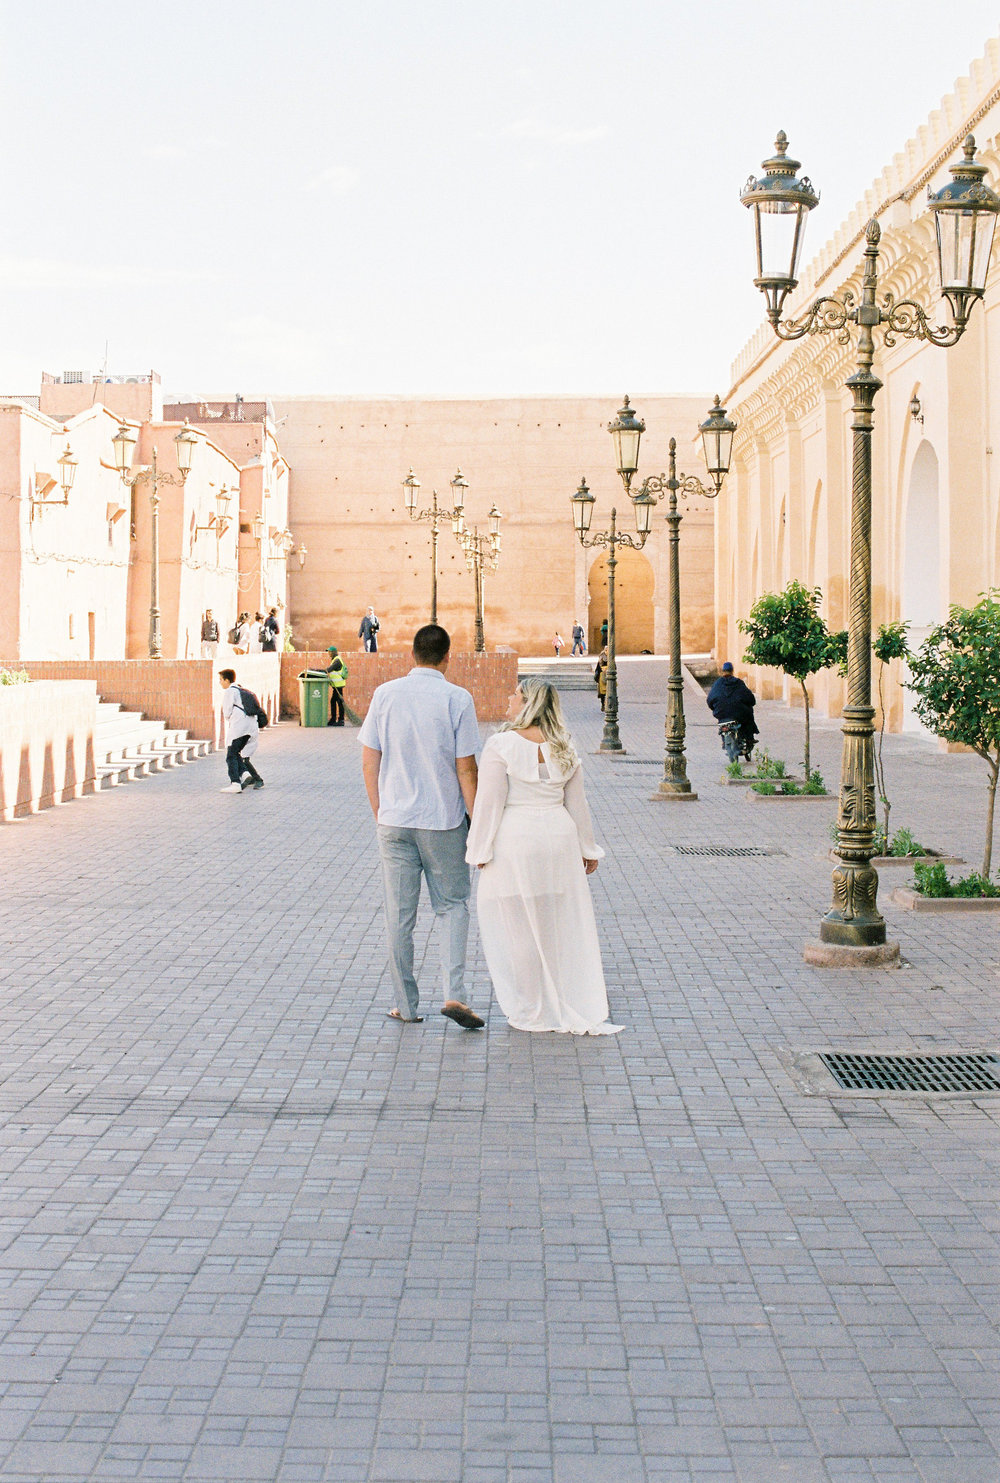 maria_rao_photography_ honeymoon_marrakesh-33.jpg